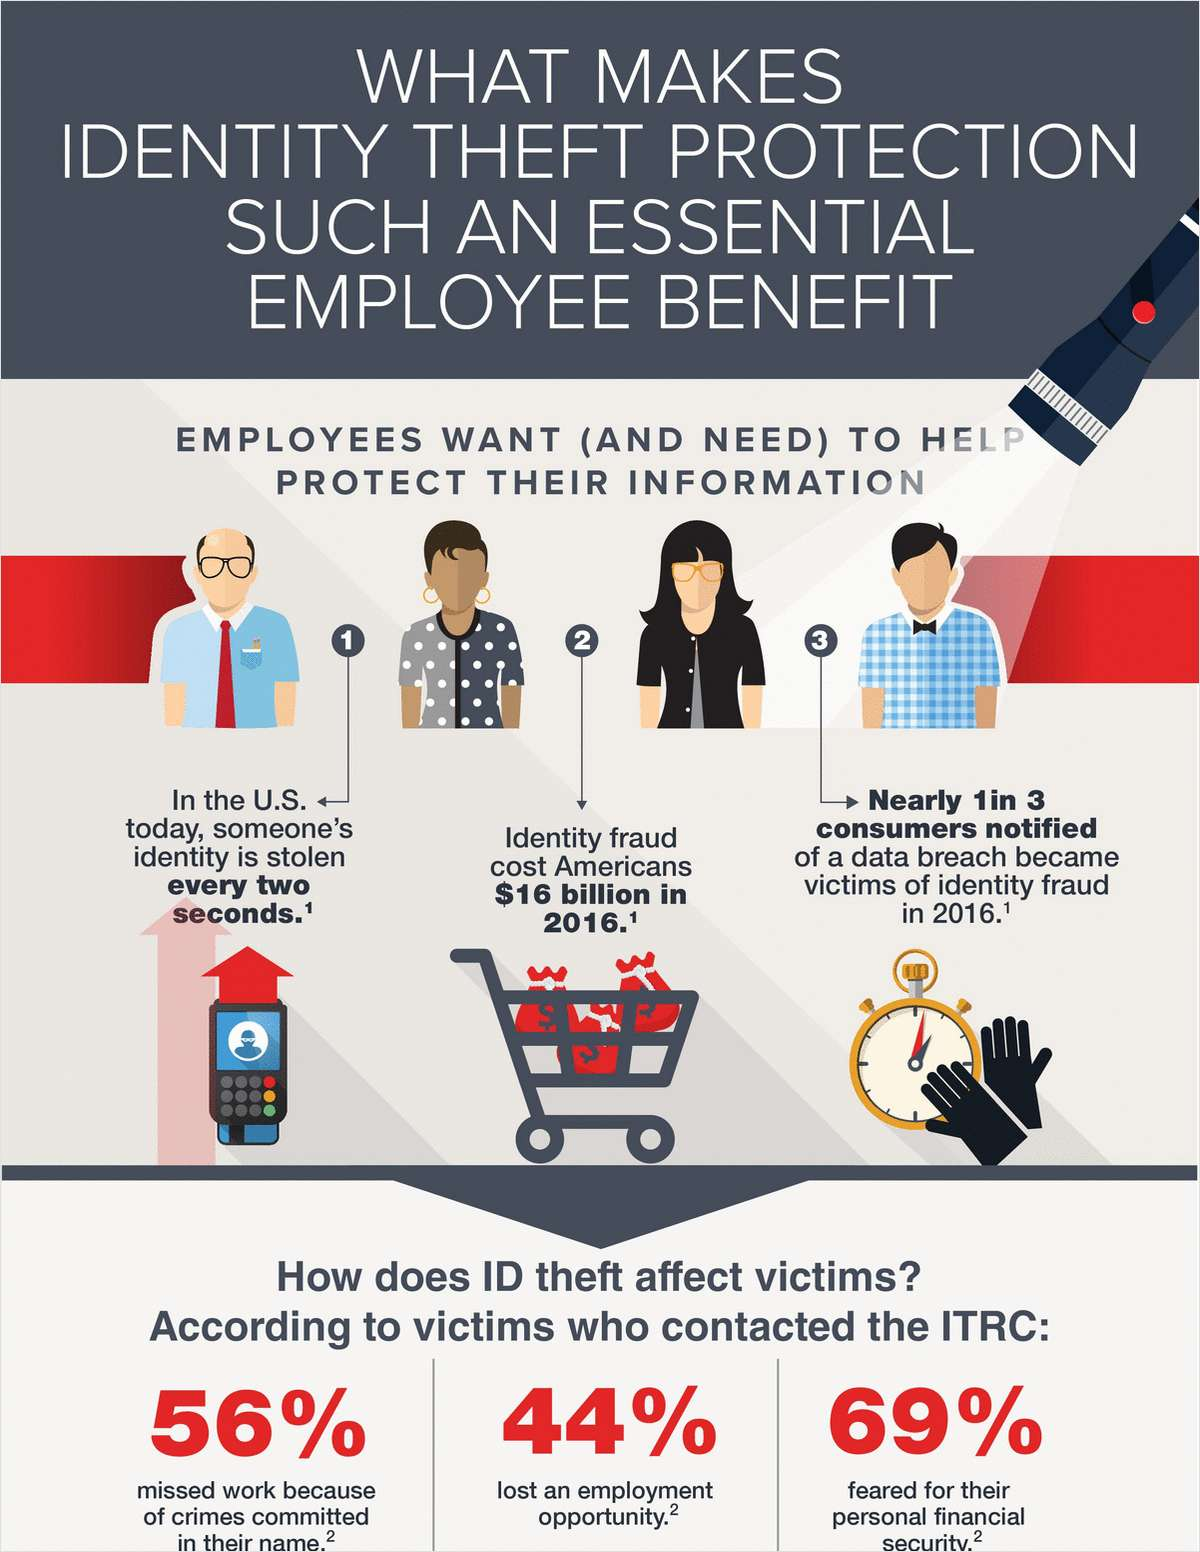 What Makes Identity Theft Protection an Essential Employee Benefit